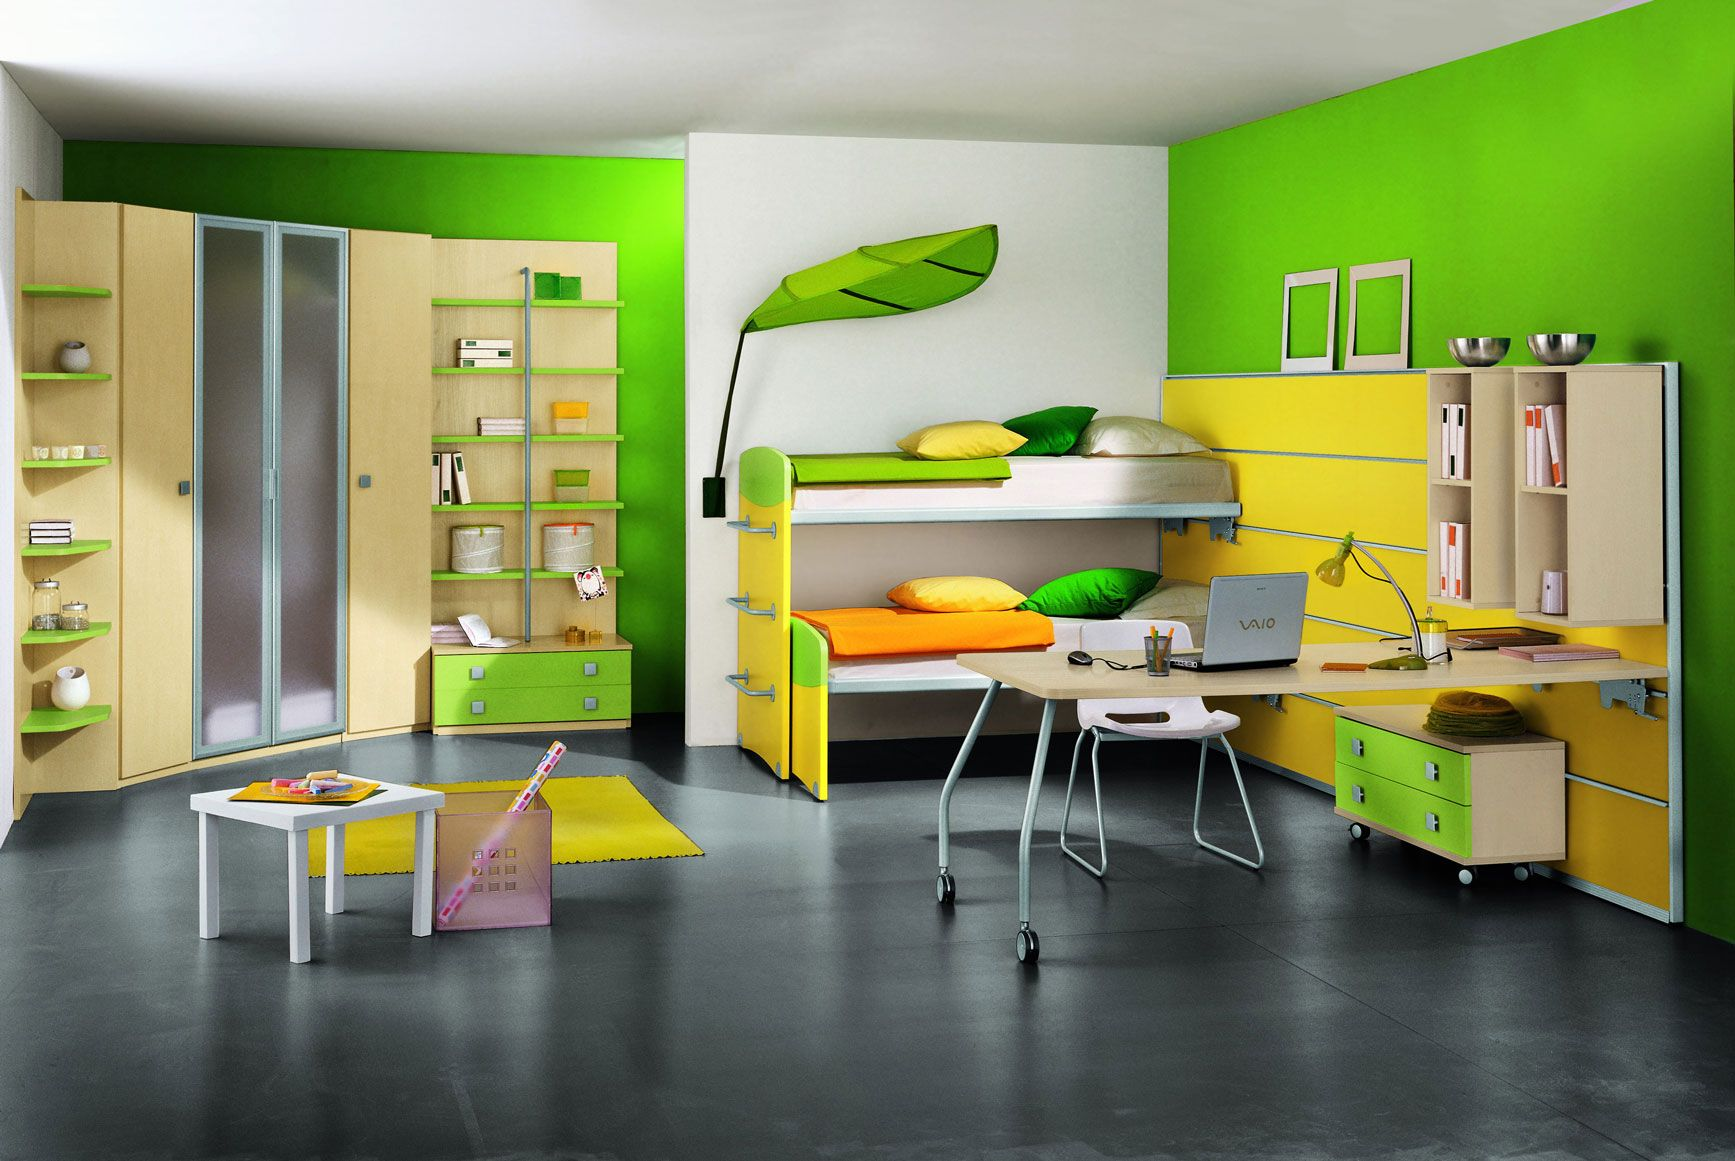 ideas,kids room painting ideas,kids bedroom paint ideas,painting